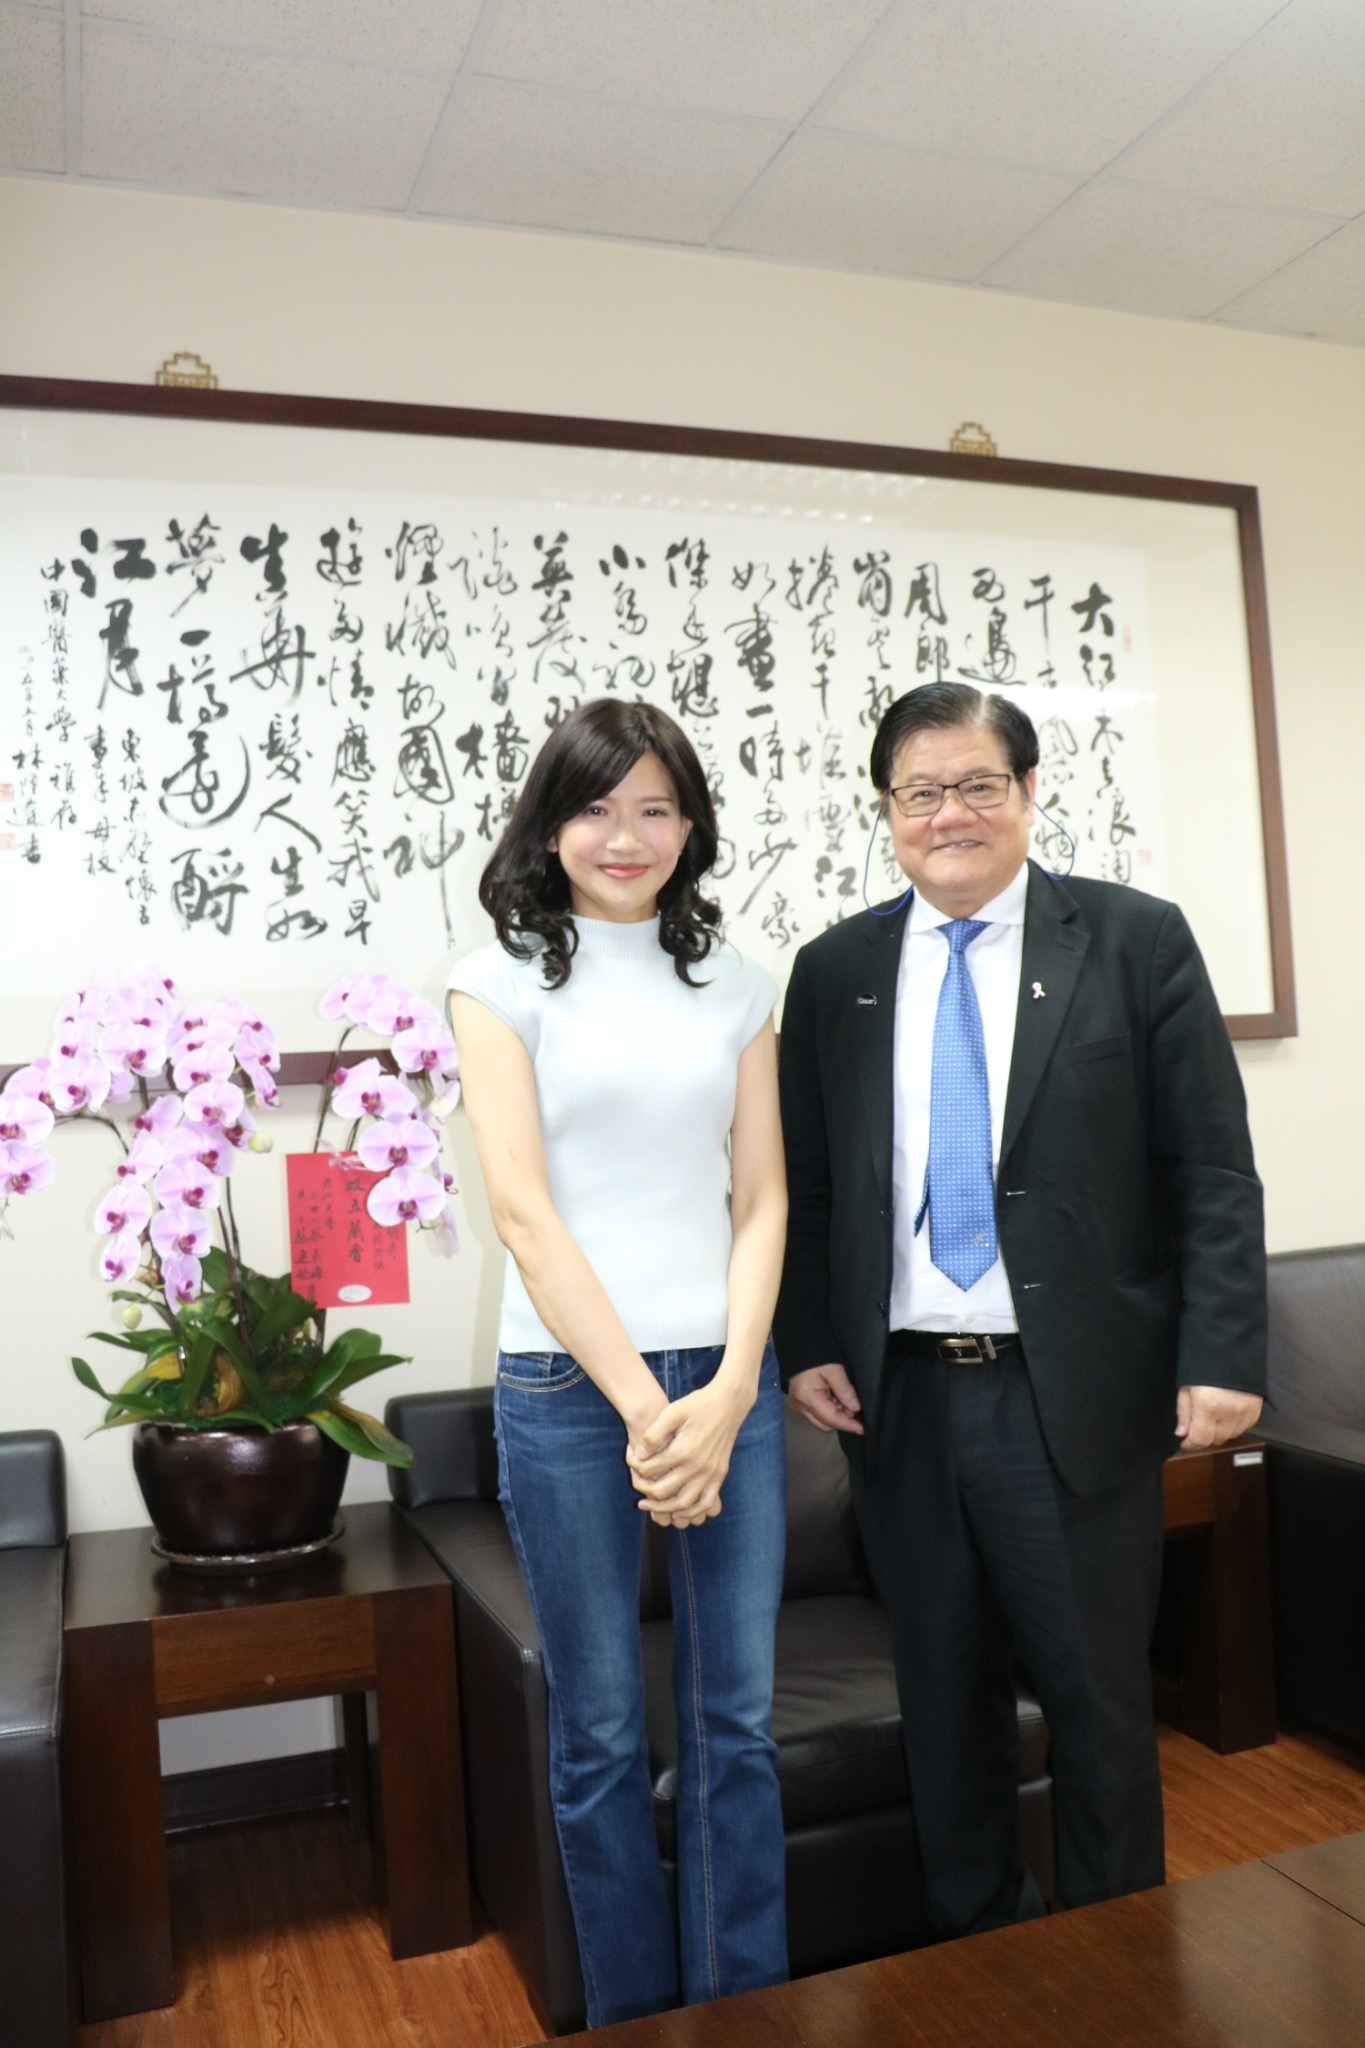 President Mien-Chie Hung and Associate Professor Hsin-Ju Kuo